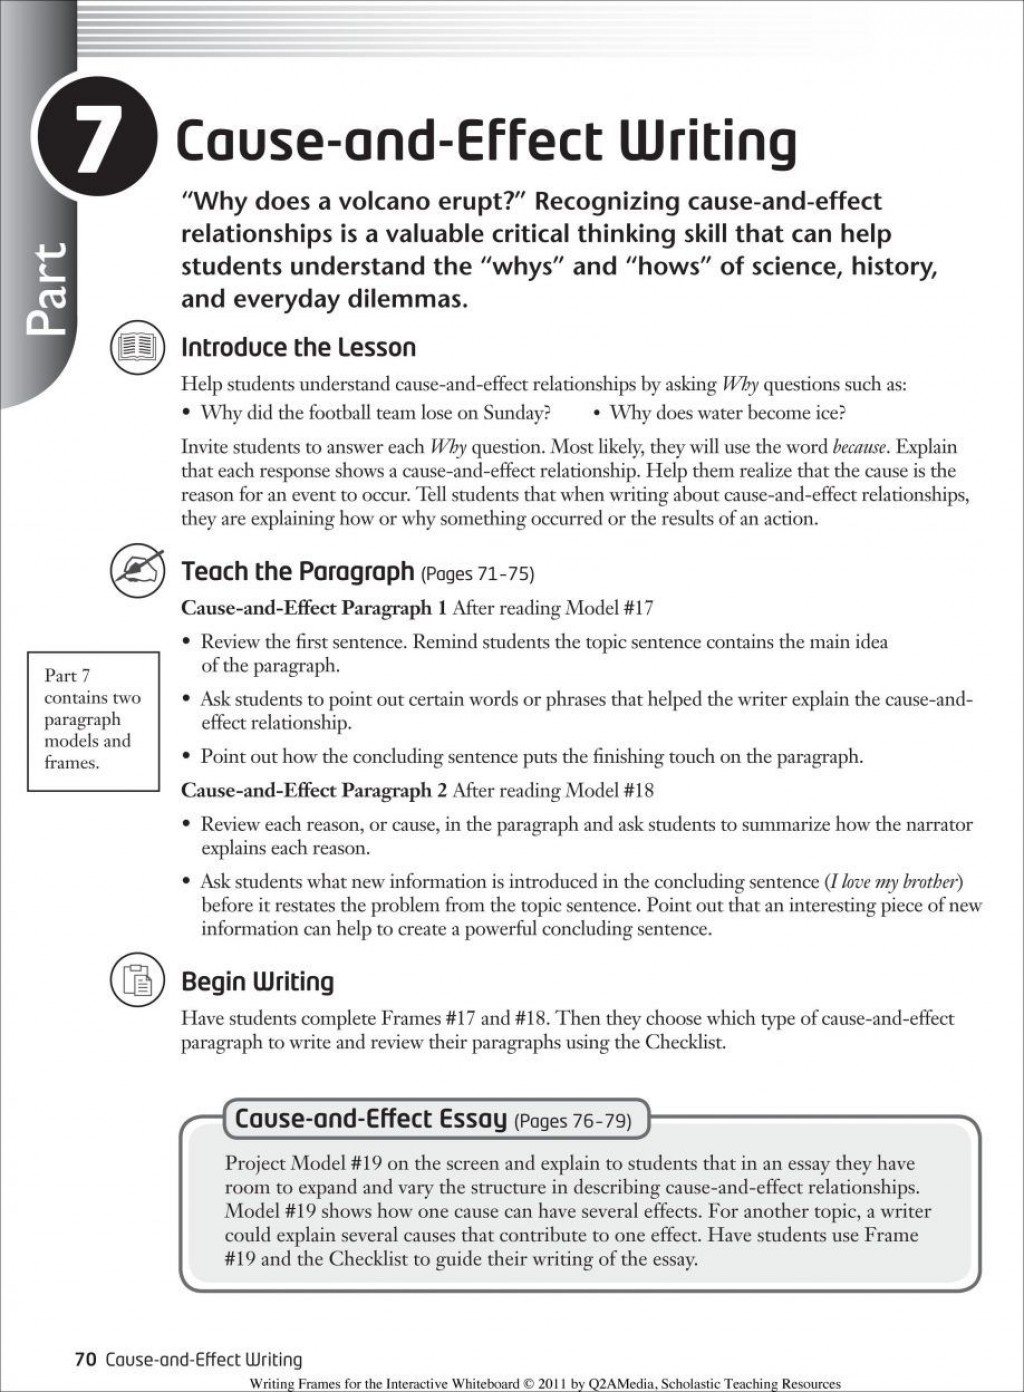 005 Cause And Effect Essay Dreaded Smoking Outline Topics For 6th Graders Format Large